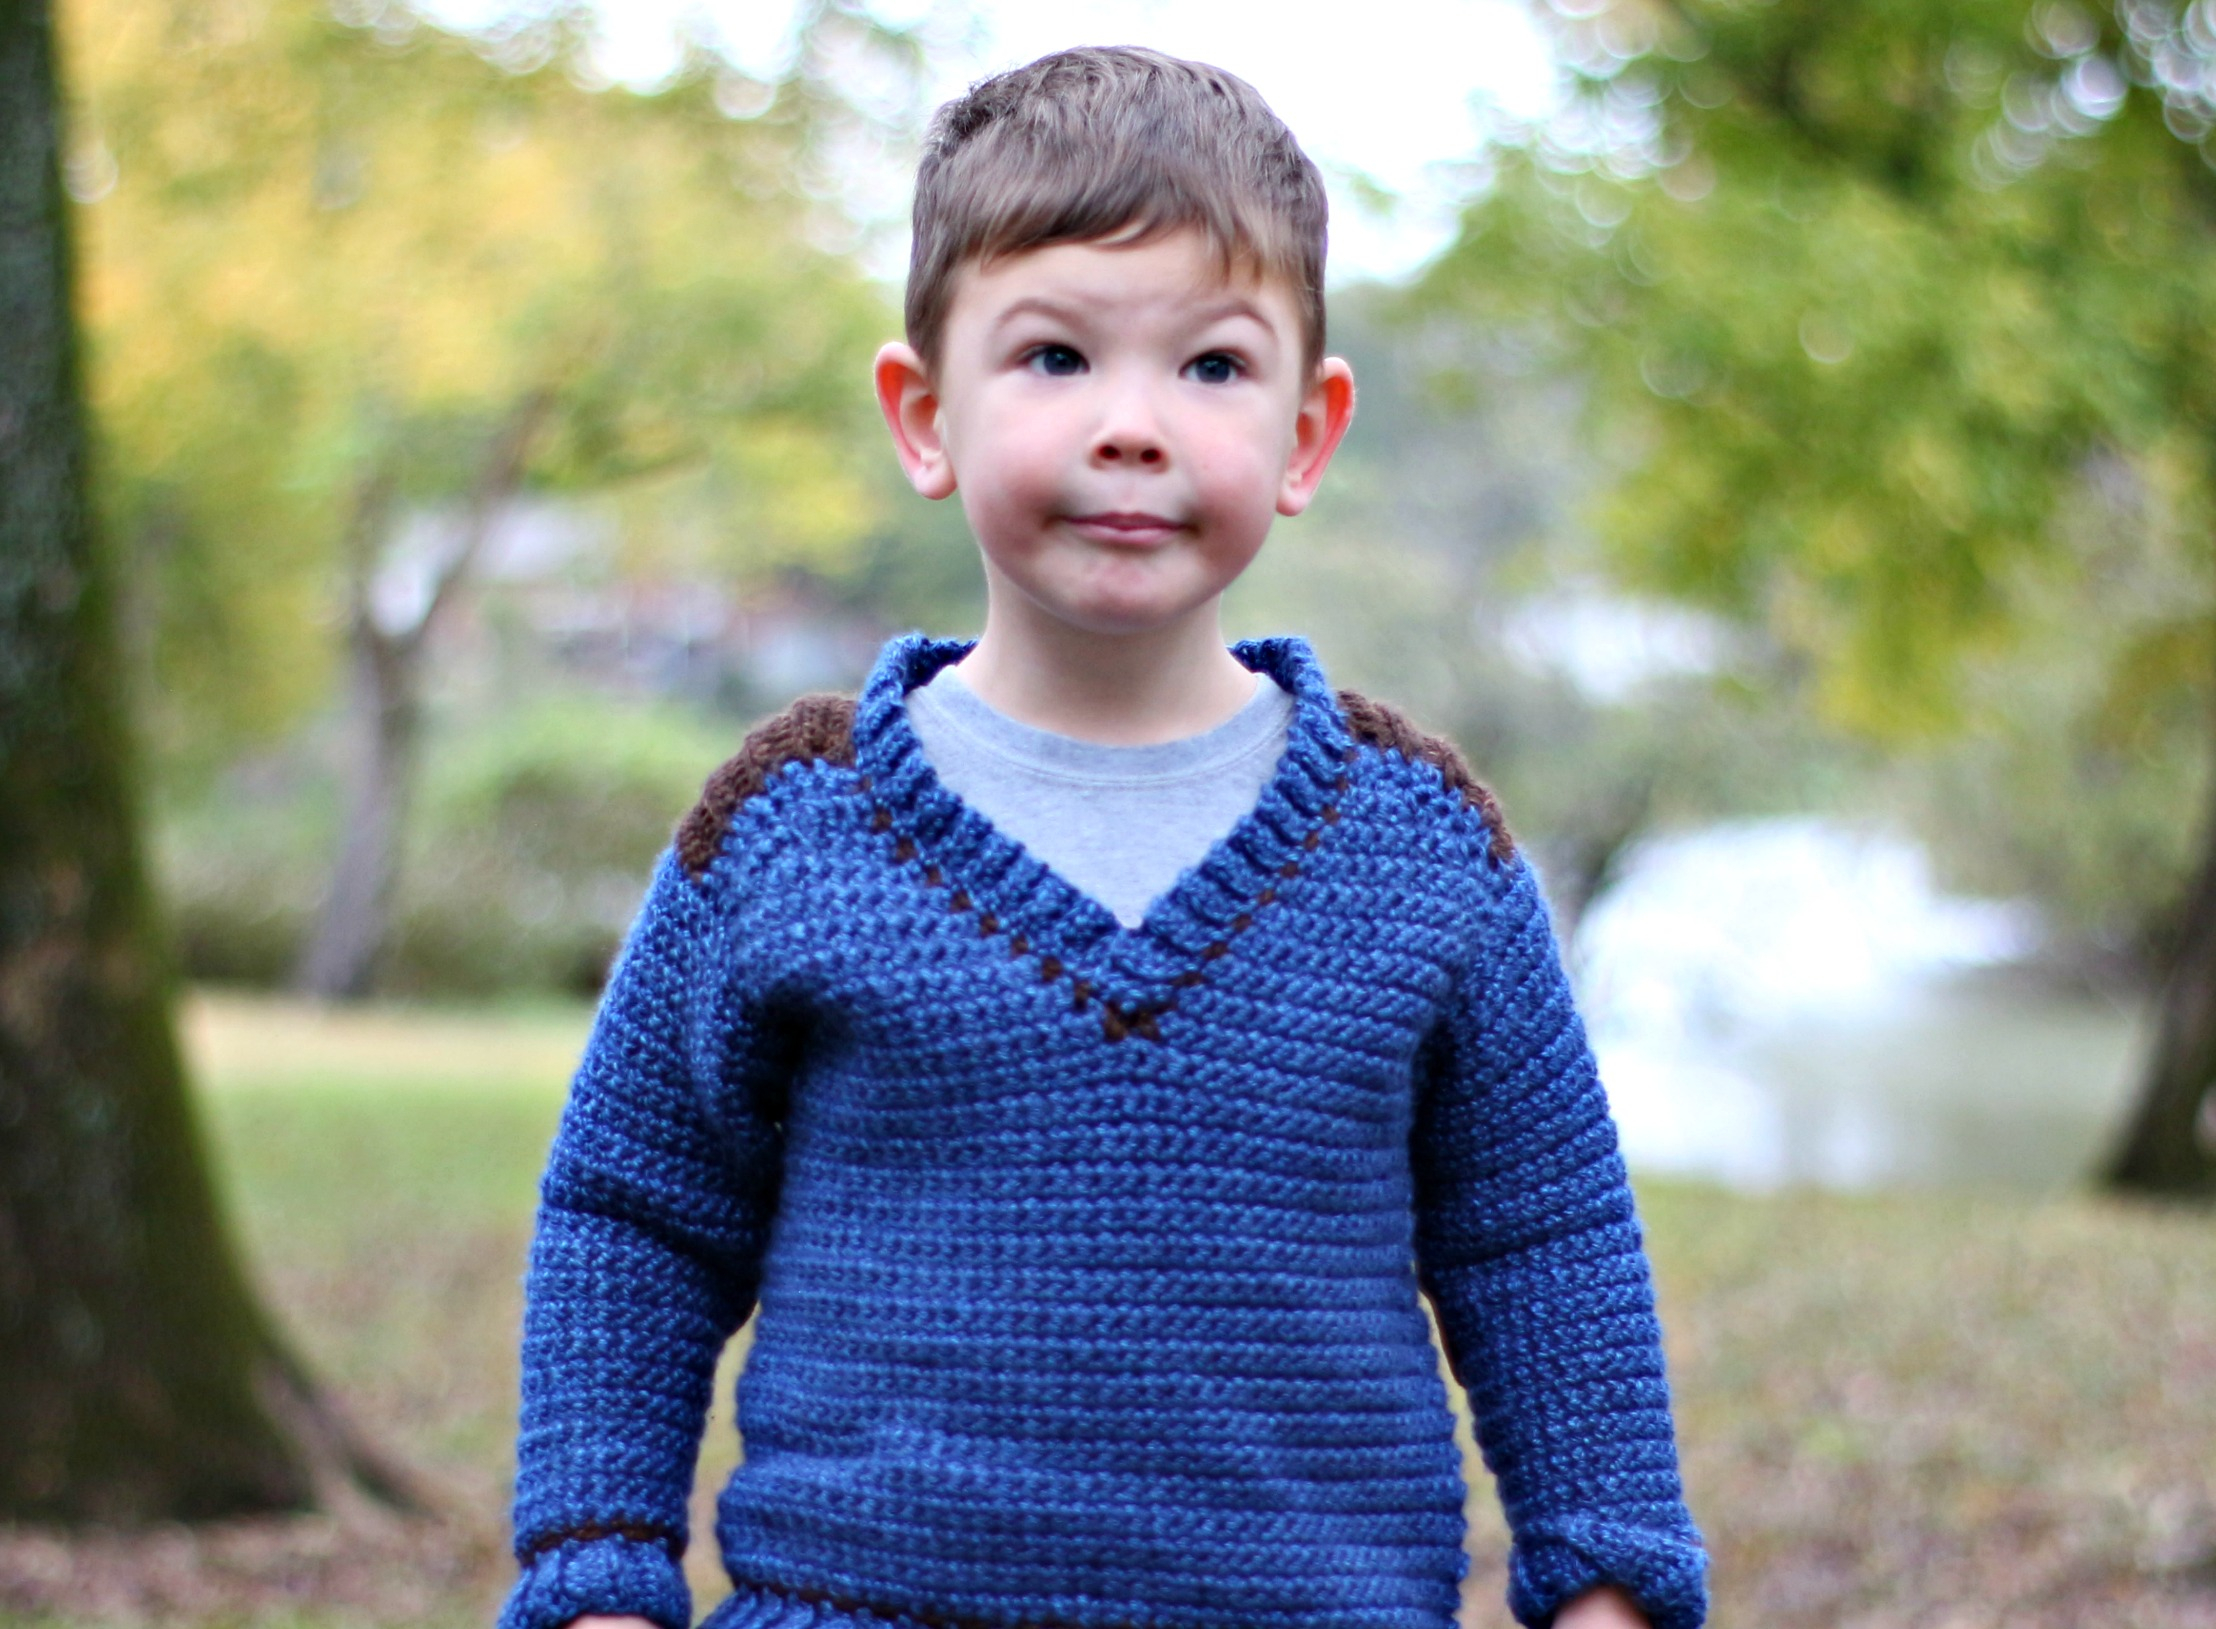 Free Crochet Jacket Pattern Designs for All Seasons Kids Saddle Shoulder Sweater Free Crochet Pattern Love Life Yarn